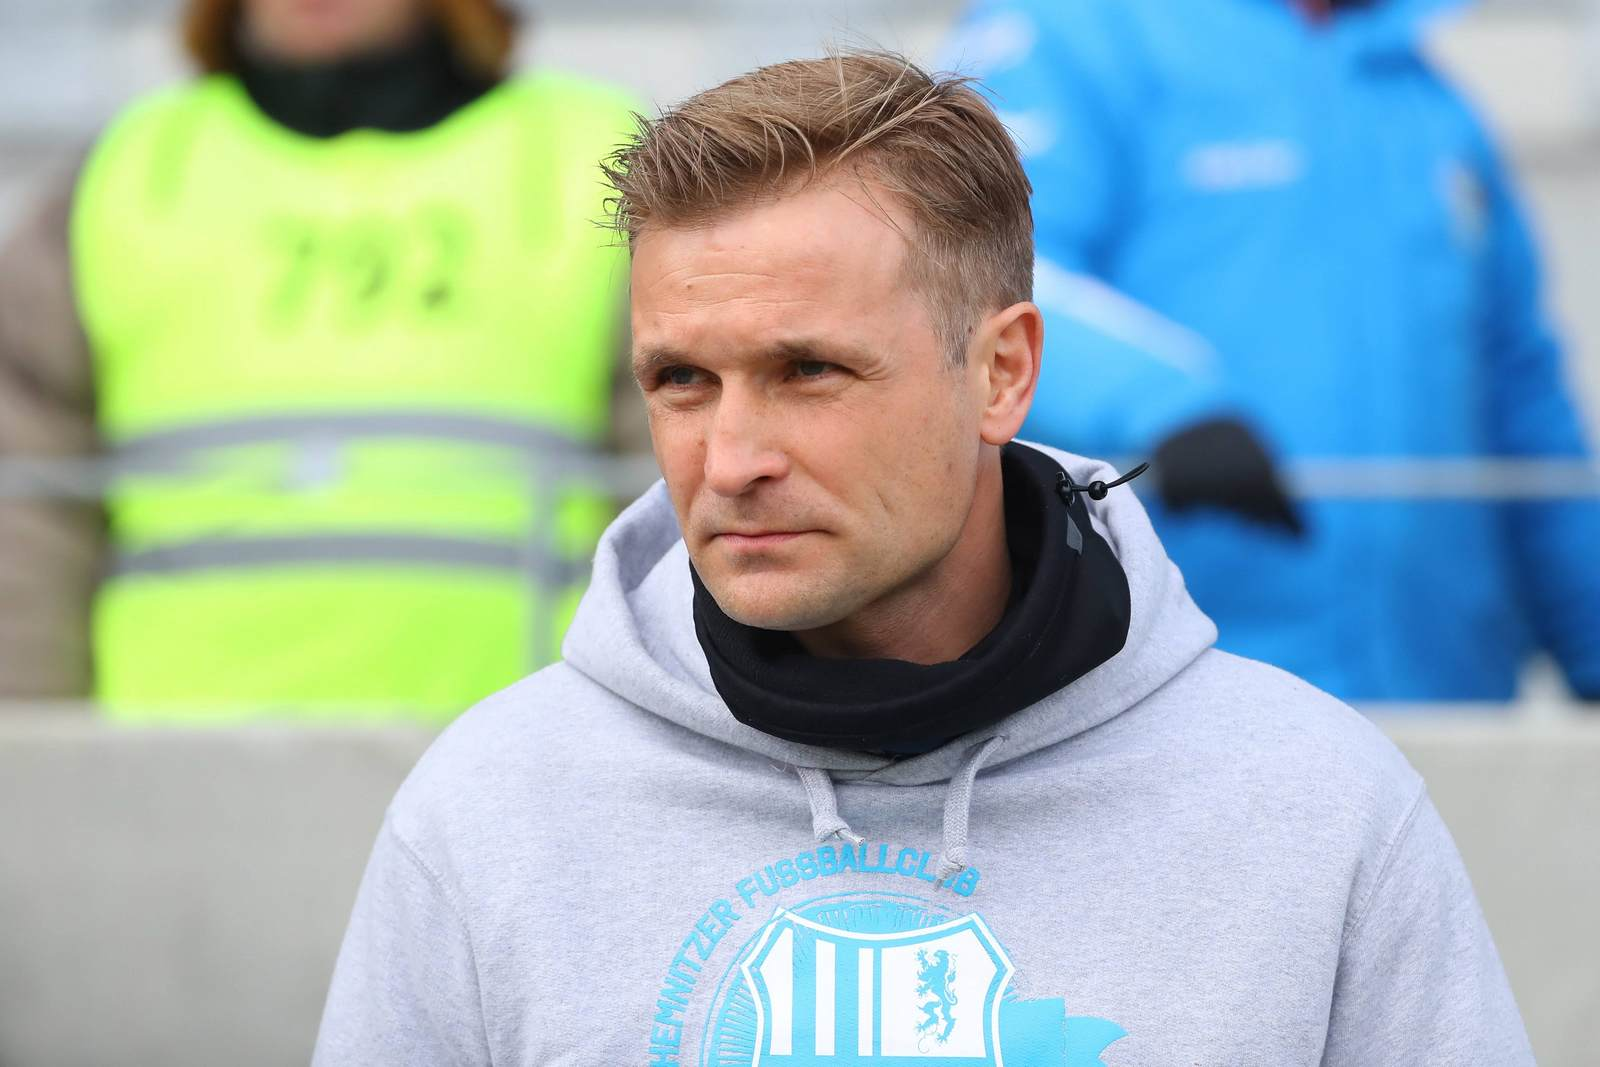 David Bergner war Trainer des Chemnitzer FC